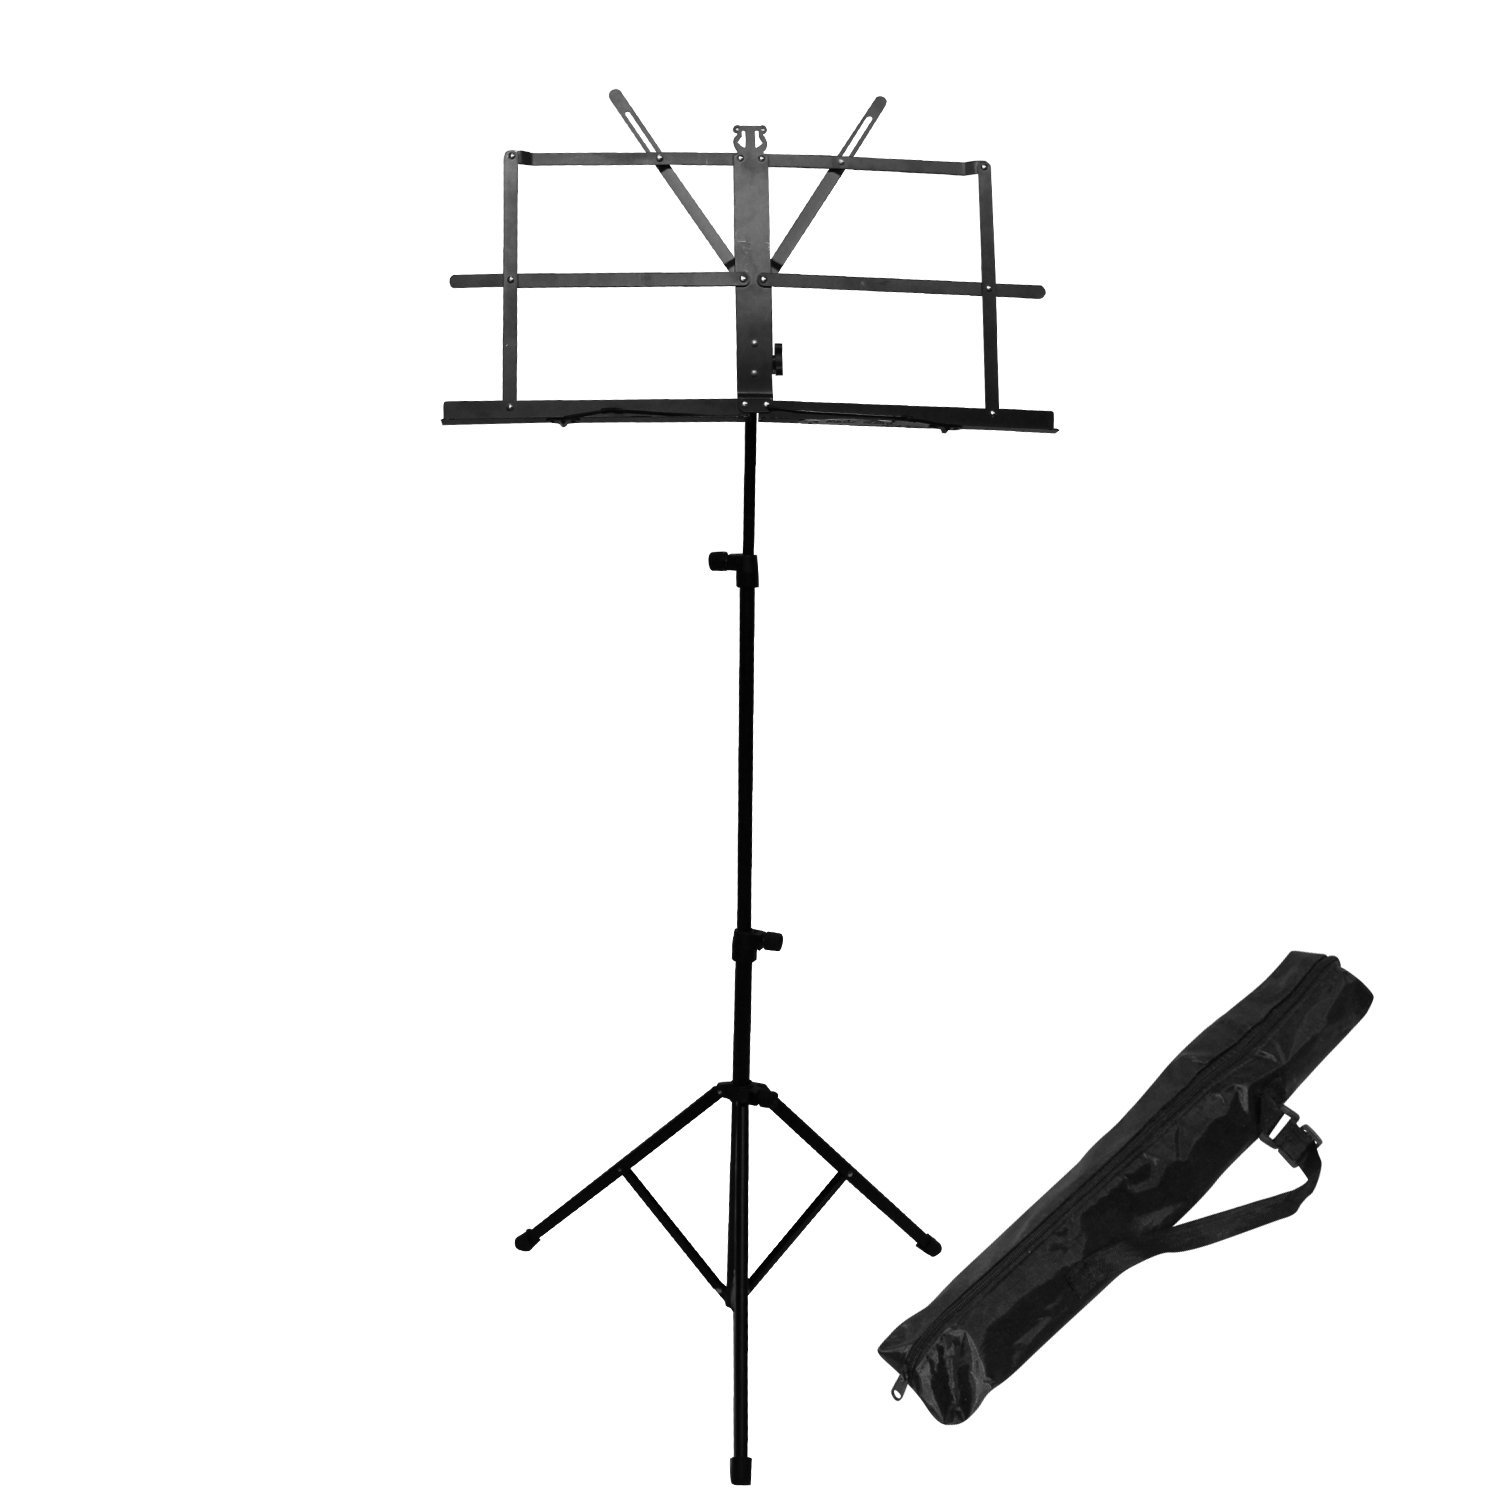 Sheet Music clipart music stand #10